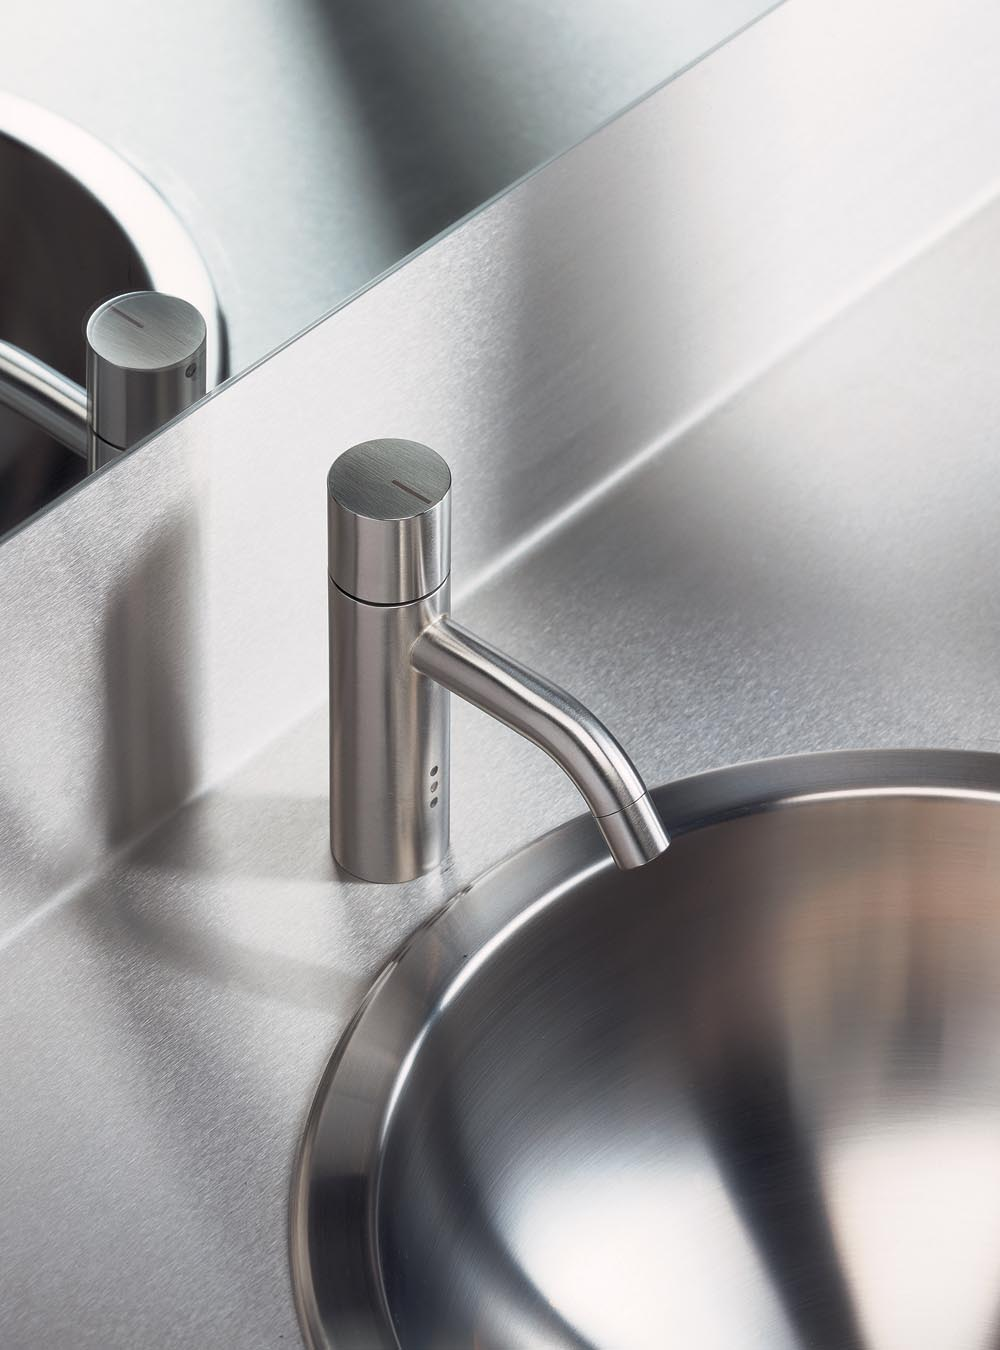 HV1E: Basin mixer with on-off sensor for 'hands free' operation. The temperature control handle is avai...